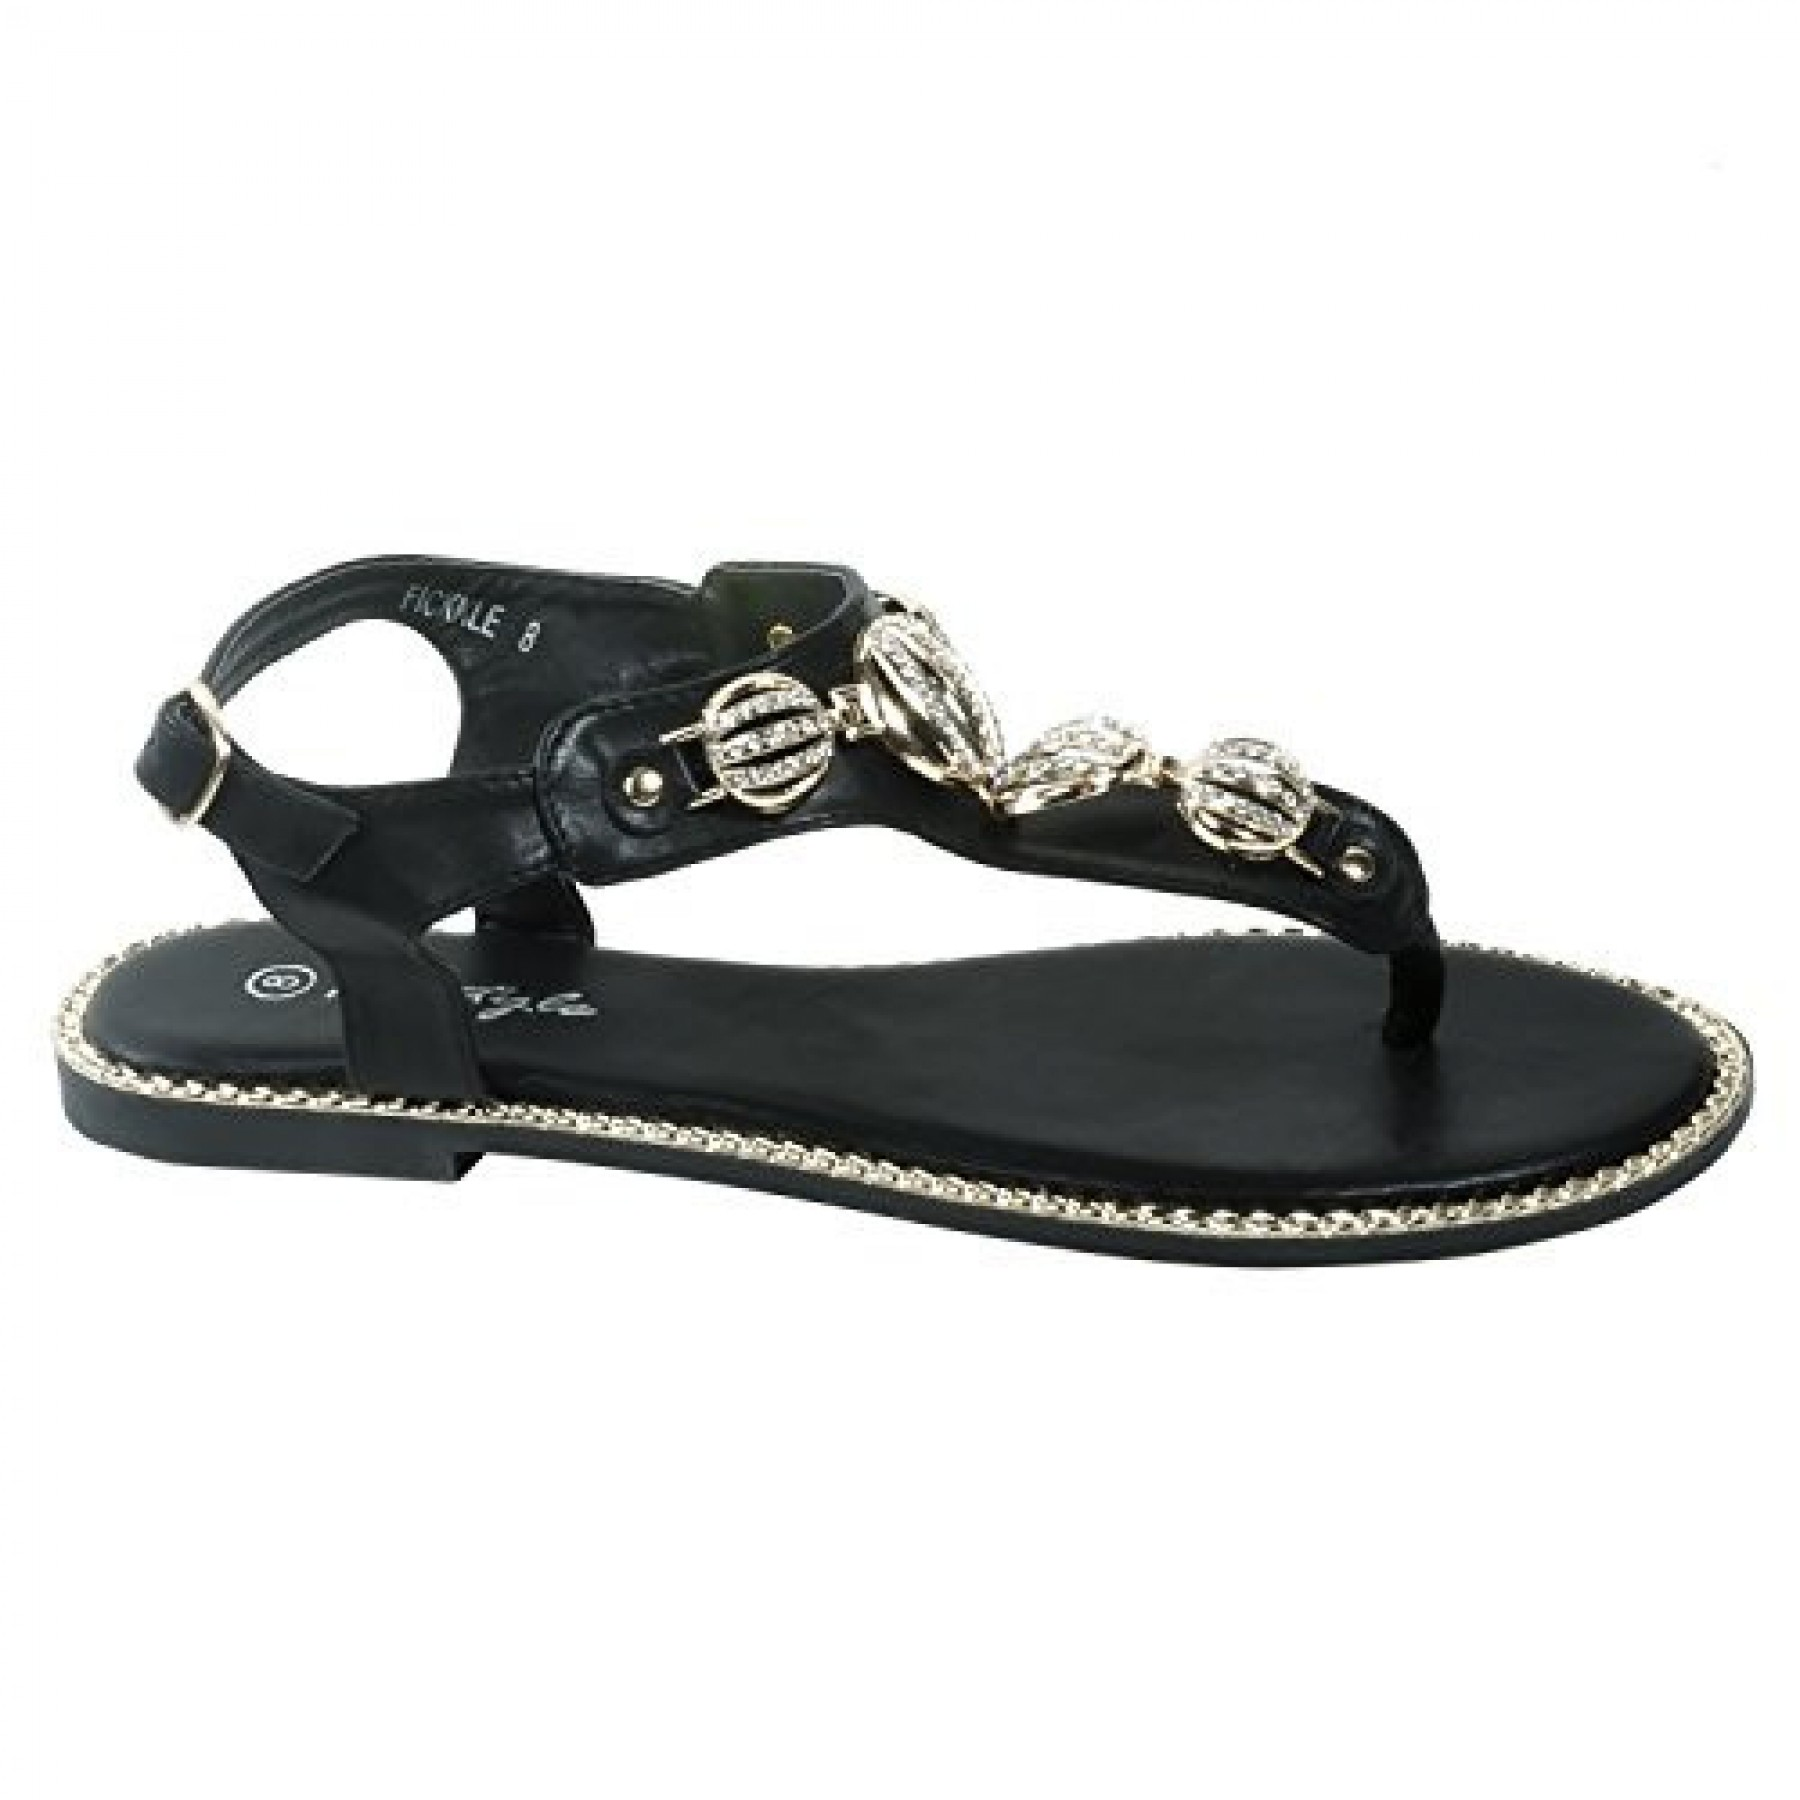 Women's Black Manmade Fickkle T-Strap Sandal with Bejeweled Gold-Tone Metallics